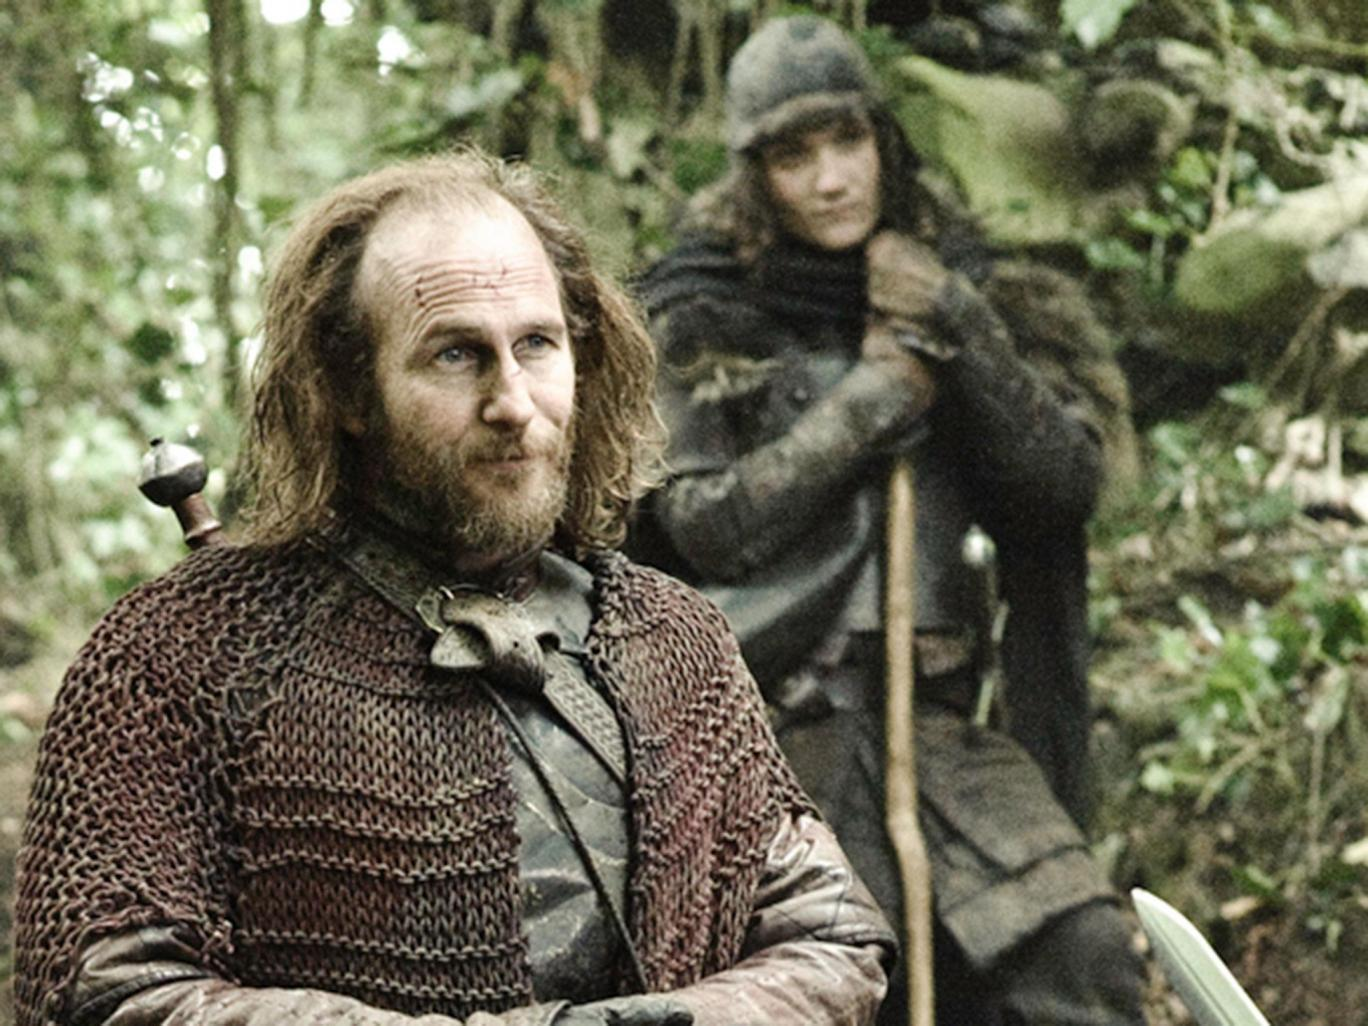 Game Of Thrones Actor Reveals How To Become An Extra On The Show denis1